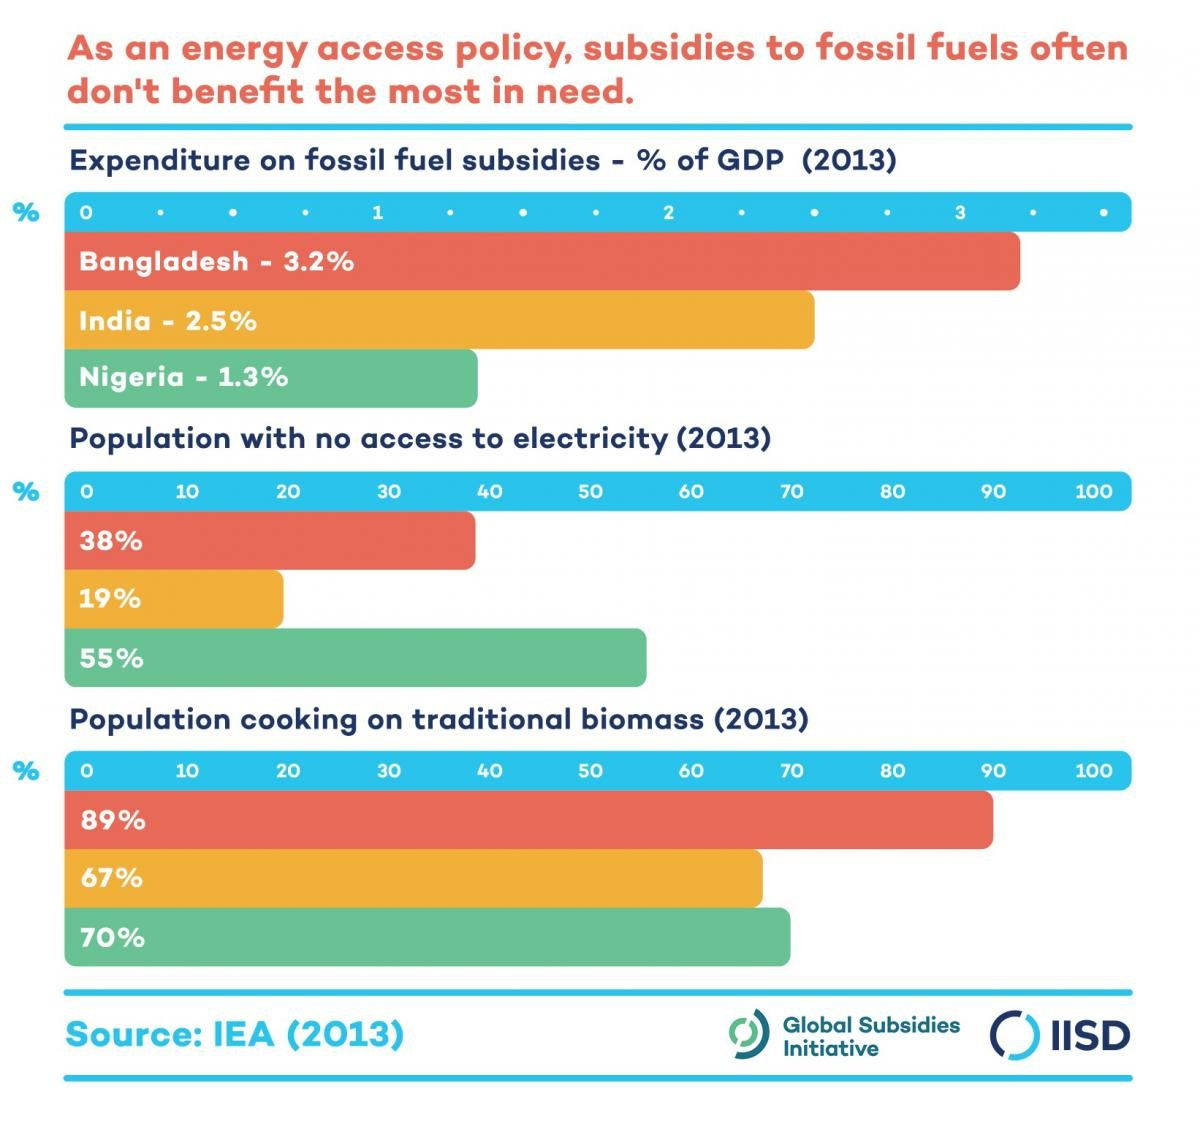 Infographic based on IEA figures from 2013, describing how as an energy access policy, fossil fuel subsidies often don't benefit the most in need